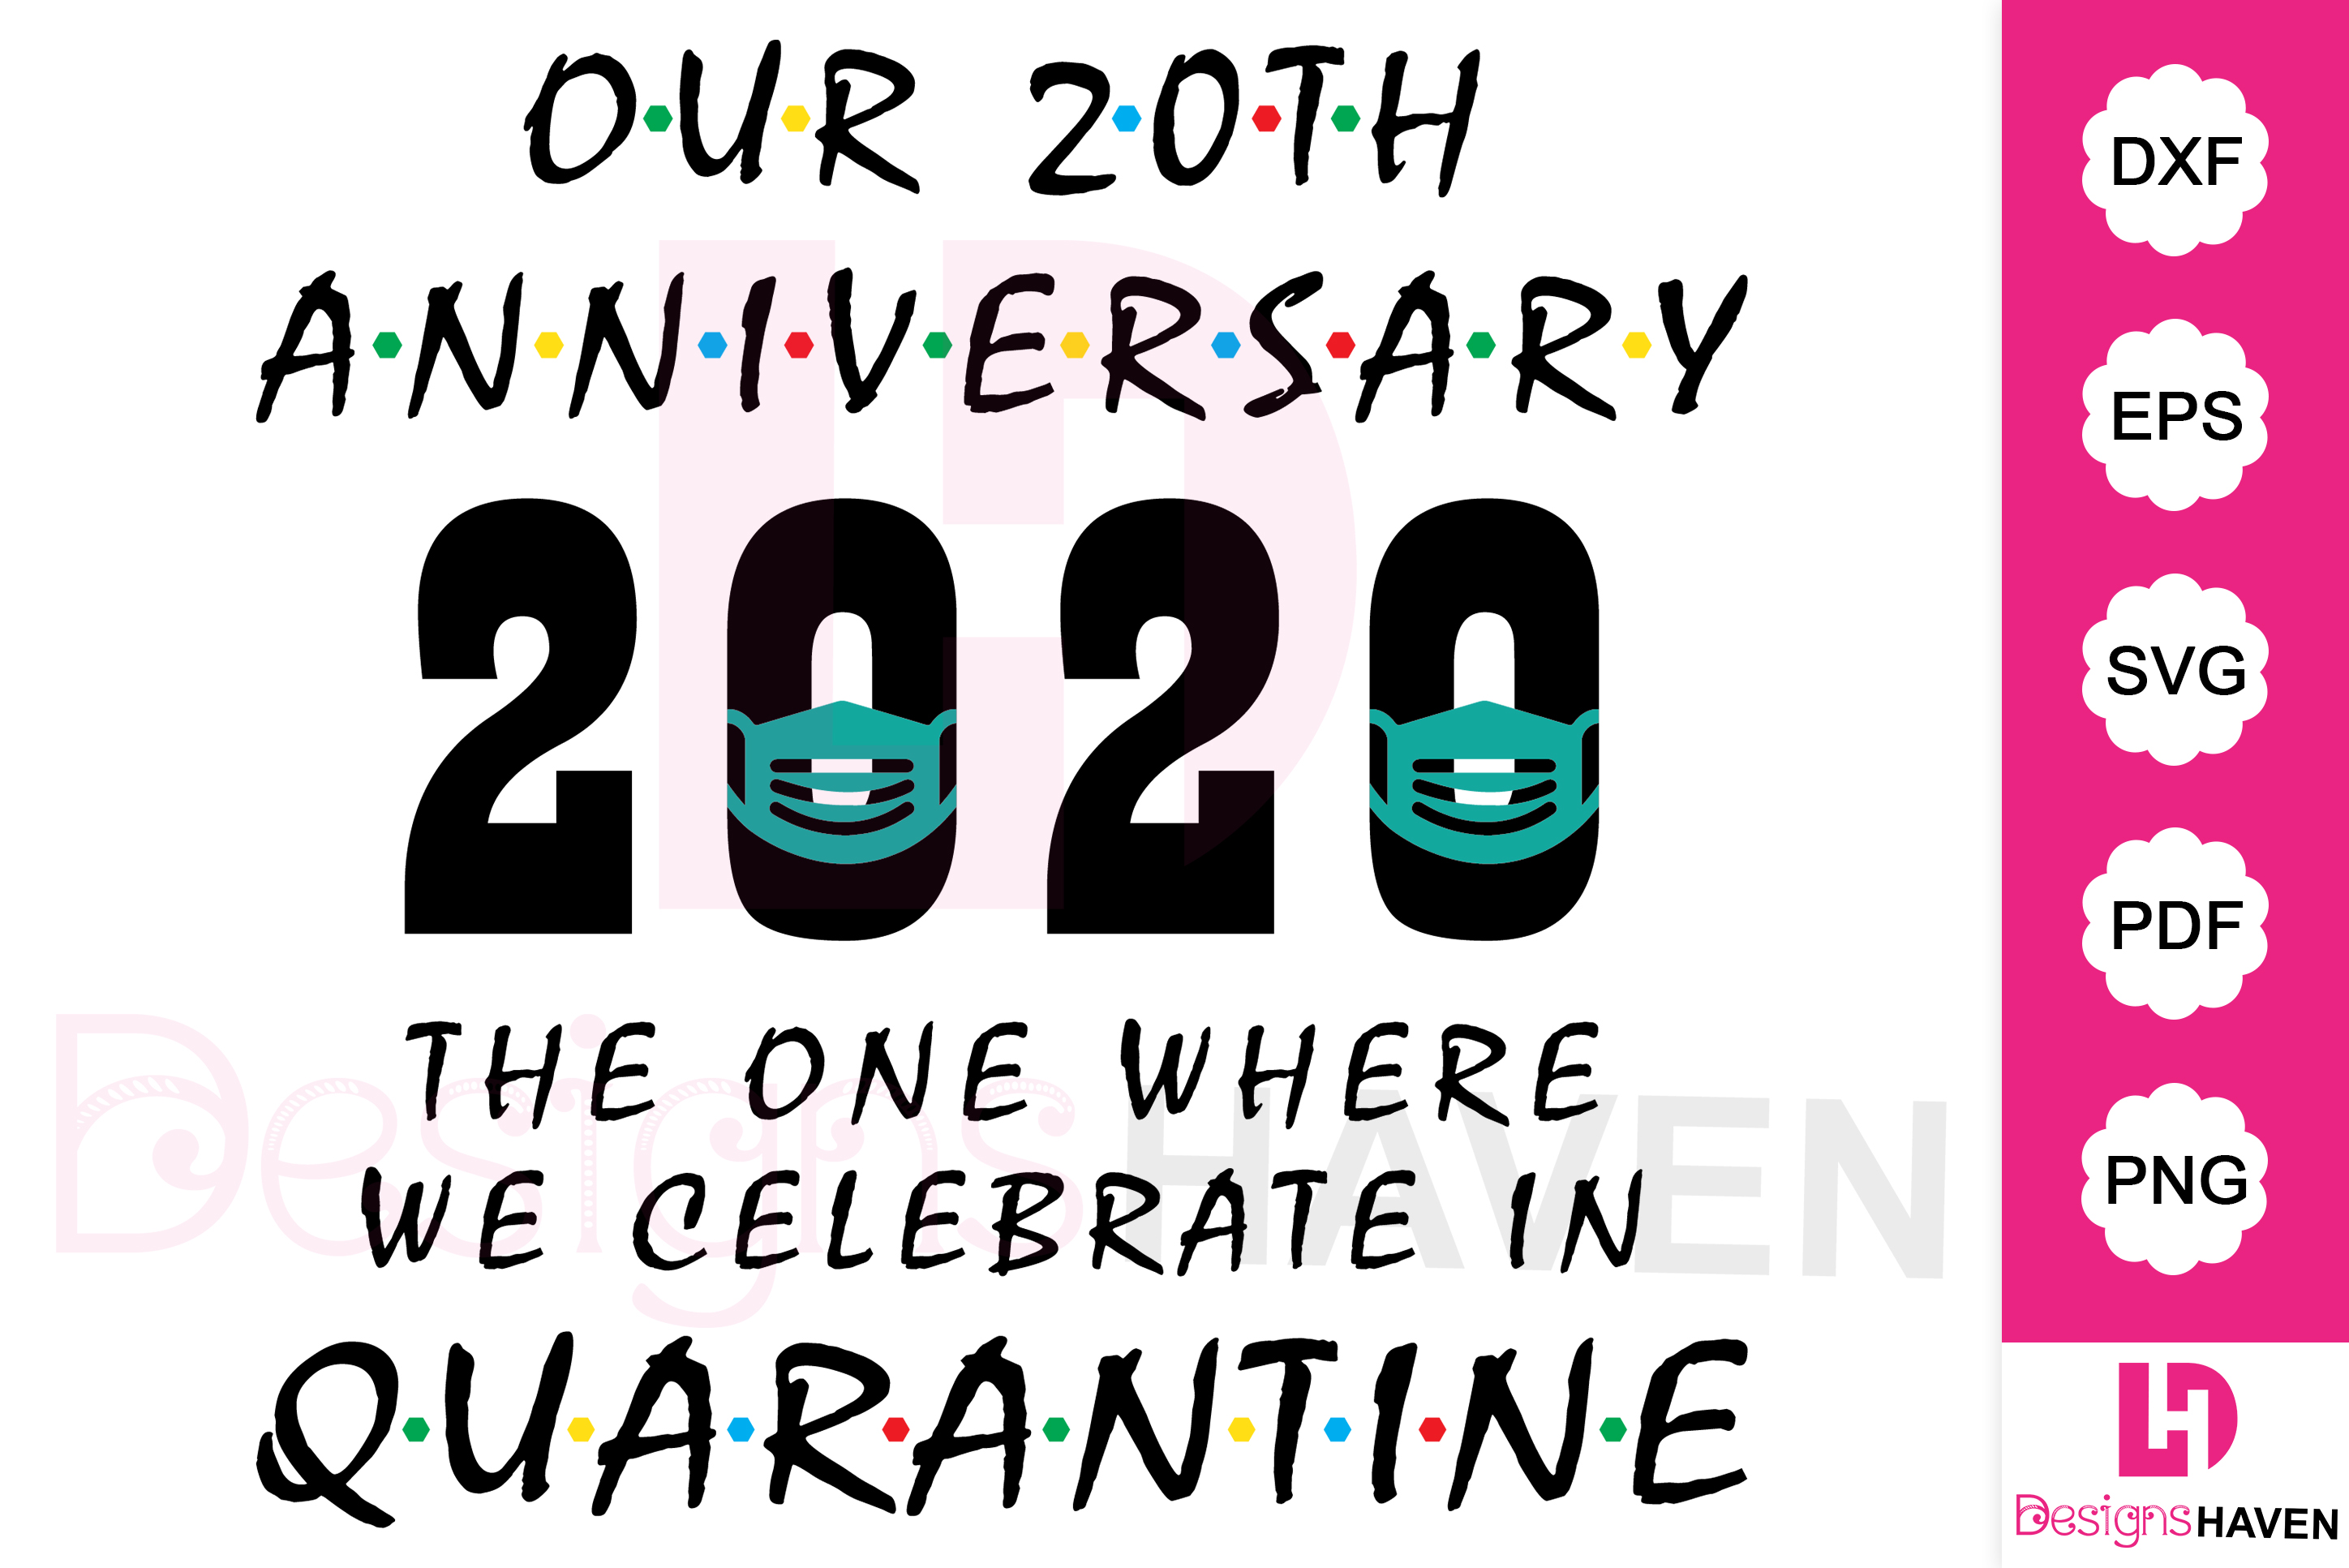 Download Free Our 20th Anniversary 2020 Quarantine Graphic By Designshavenllc for Cricut Explore, Silhouette and other cutting machines.